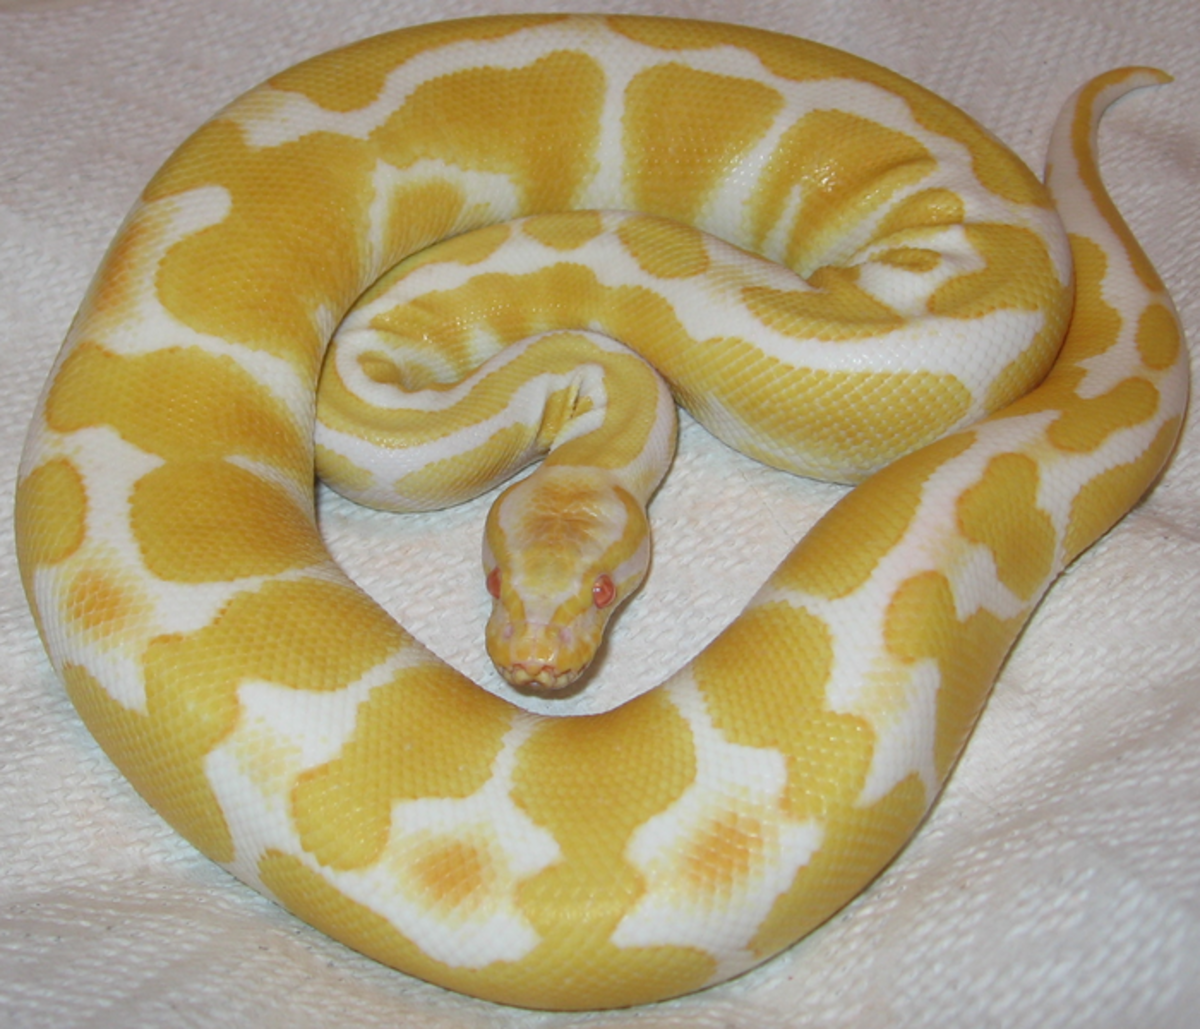 Ball pythons, like this albino ball python, are fairly docile snakes.